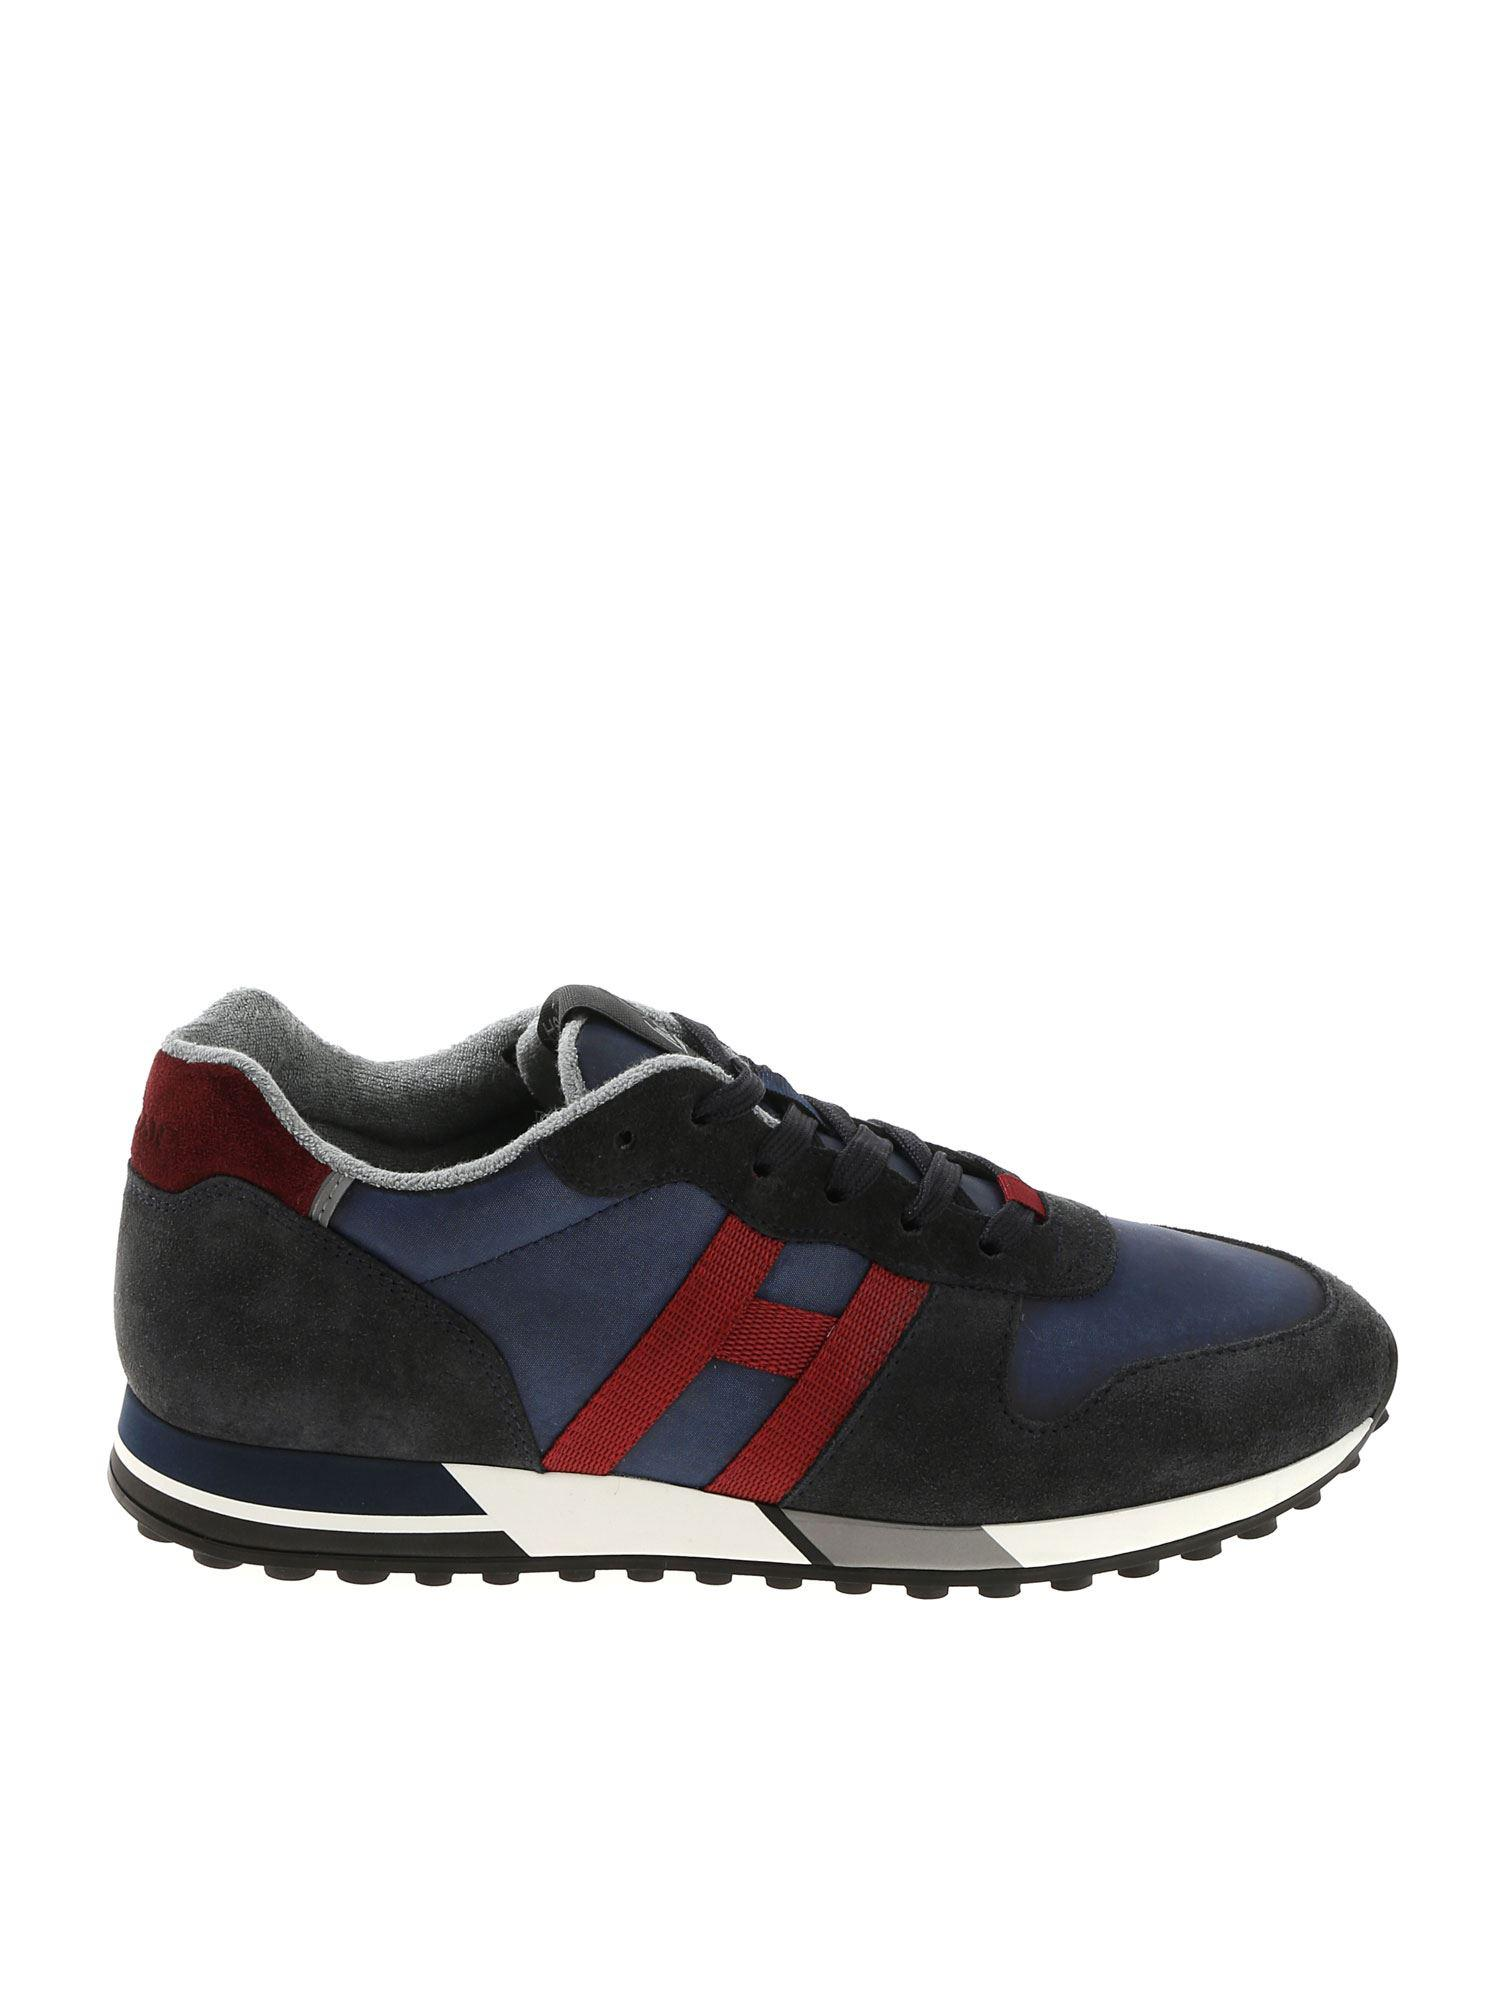 Lyst - Hogan H383 Blue And Burgundy Sneakers in Blue for Men b93ef0c1f